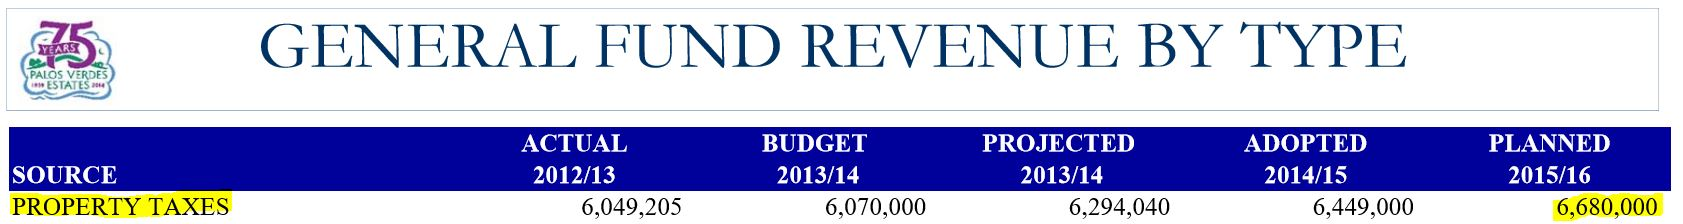 PVEPD Budget 2015-2016 - Property Taxes - Highlighted